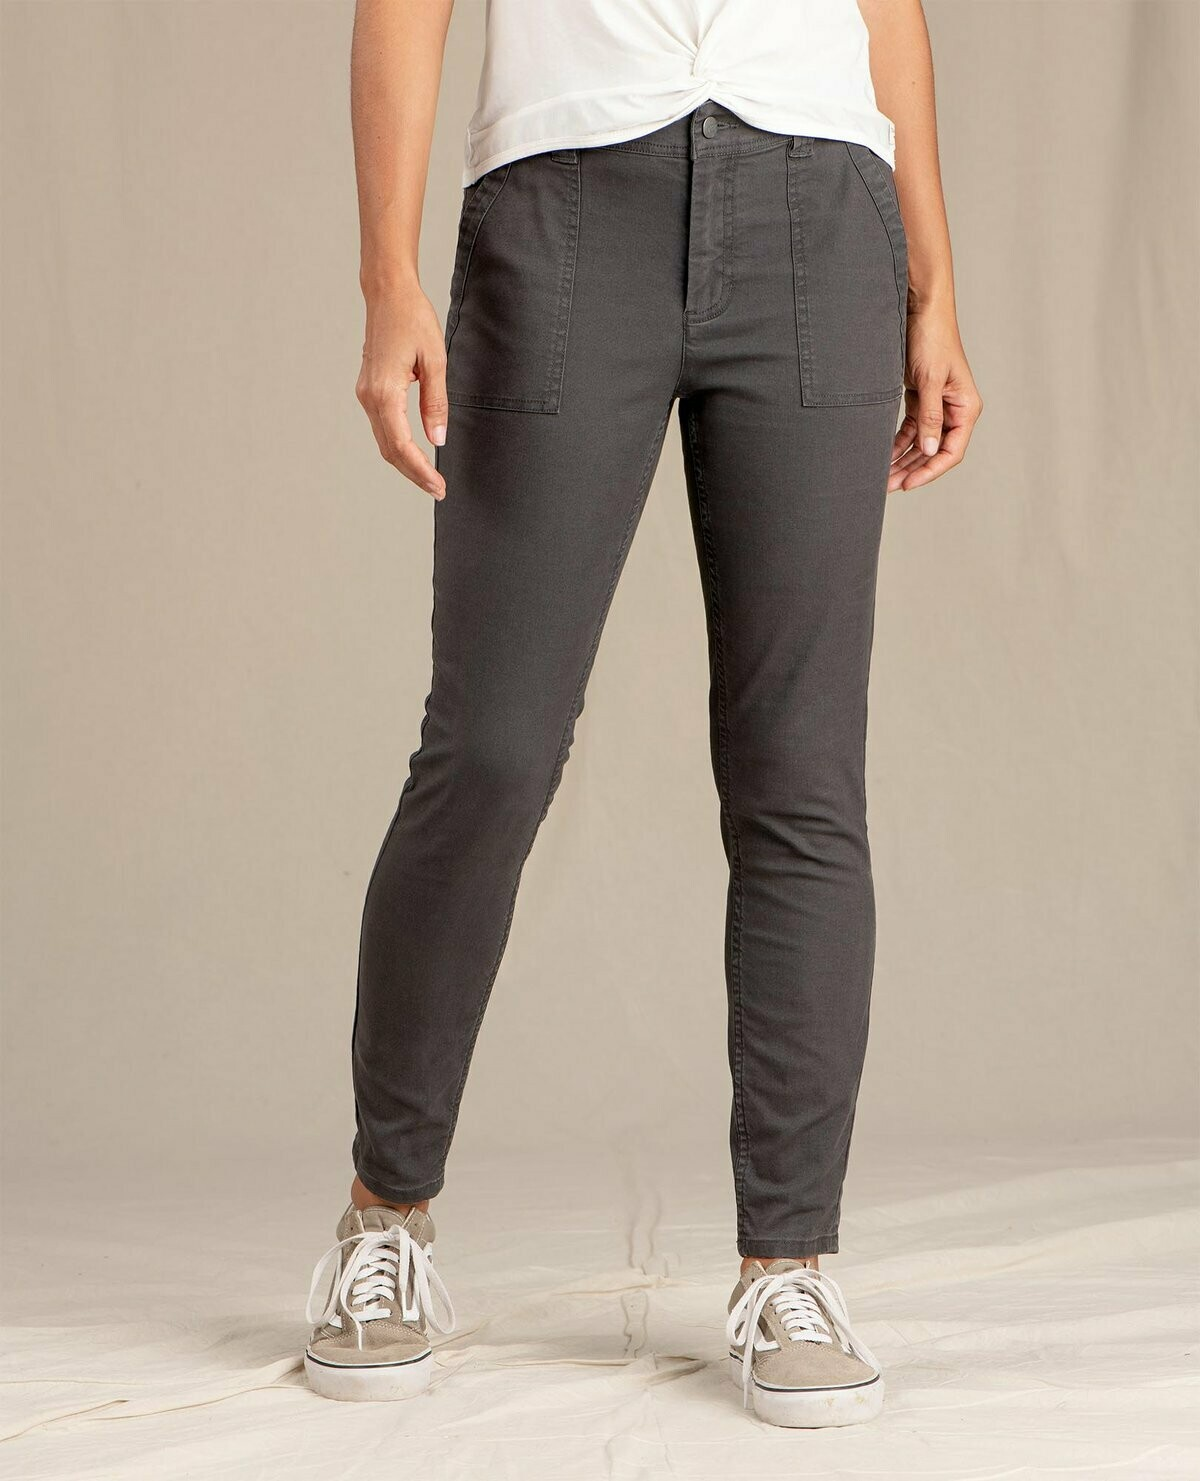 Toad & Co W's Earthworks Ankle Pant